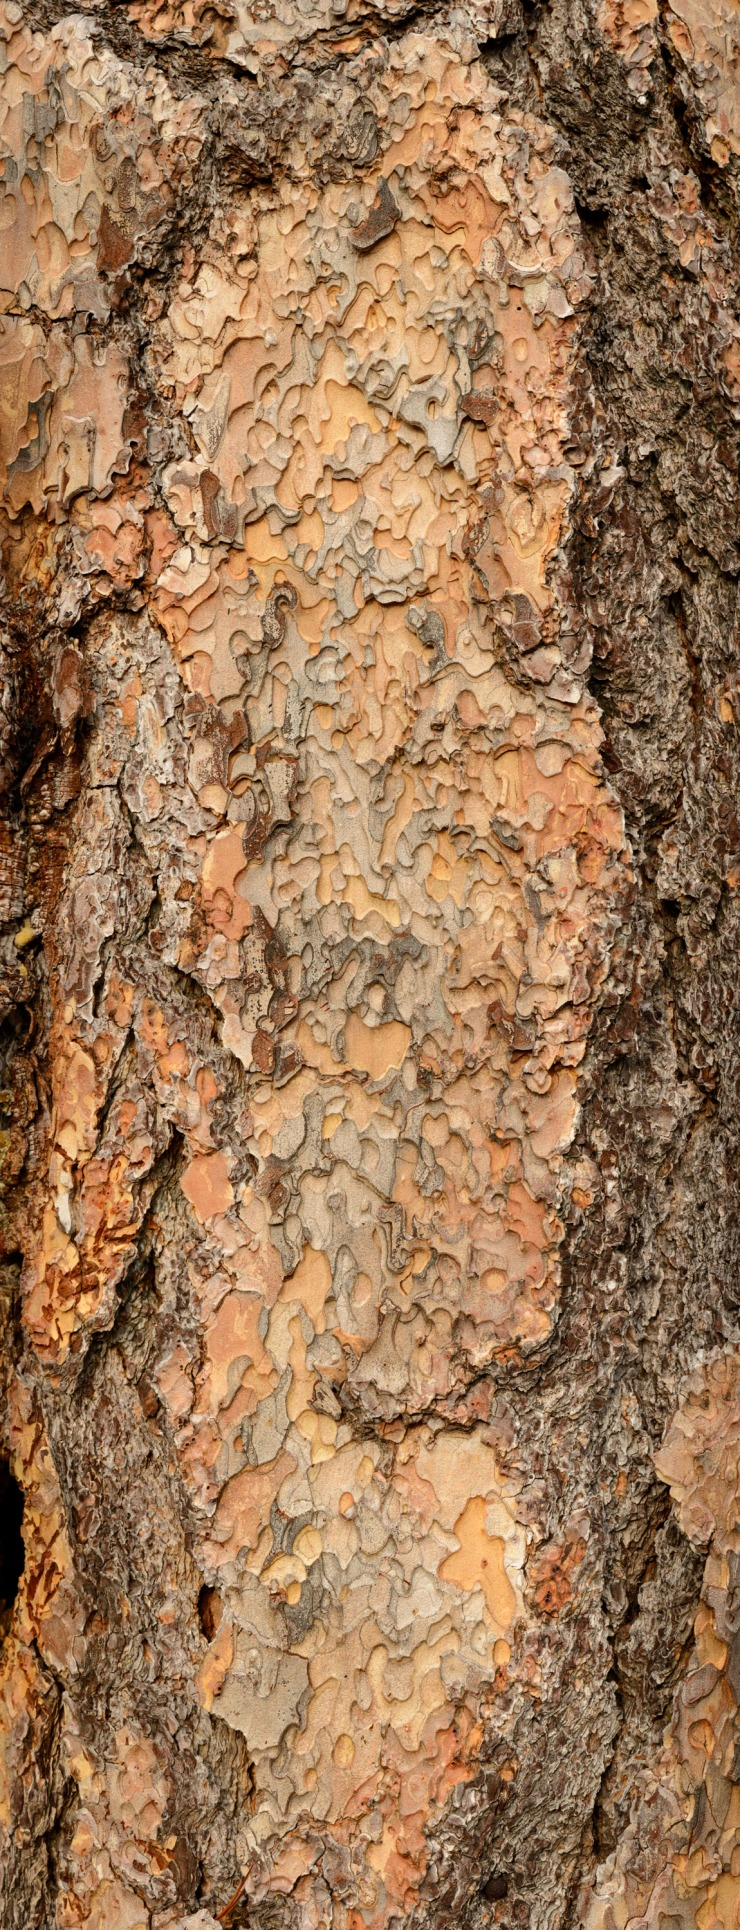 Large format image of ponderosa pine bark close up